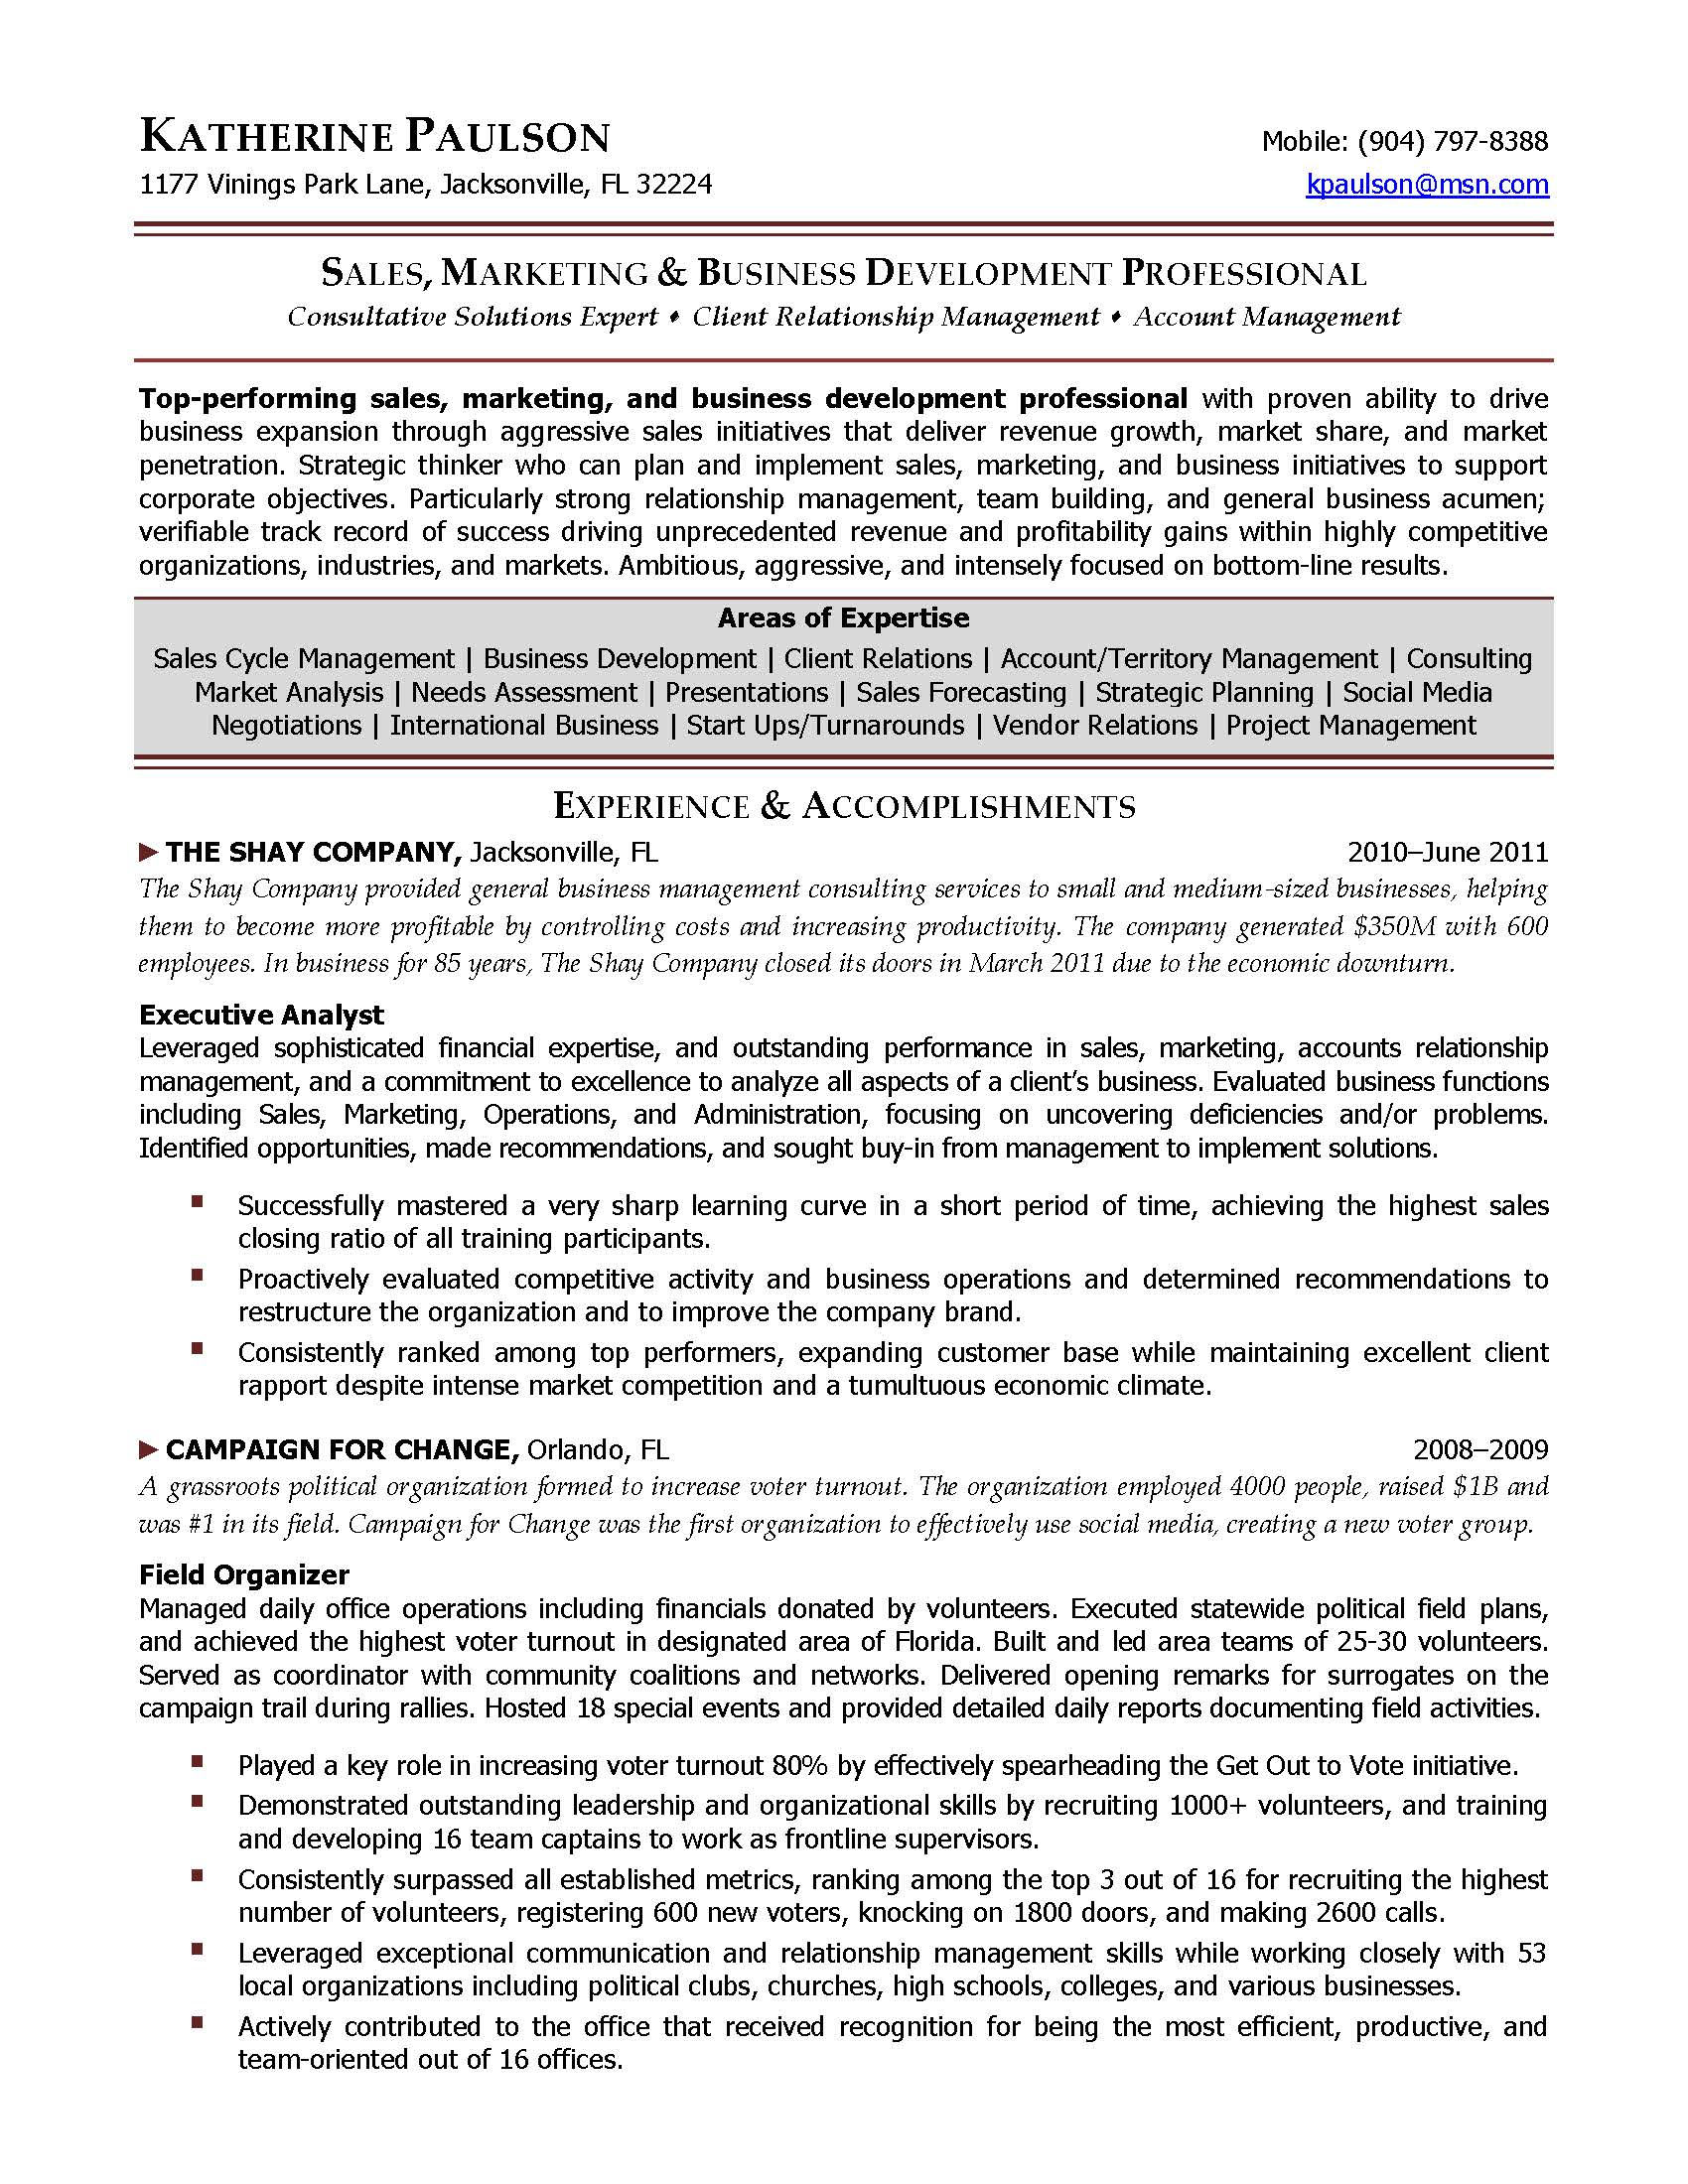 Business Development Director Resume Sample, Provided By Elite Resume  Writing Services  Finance Director Resume